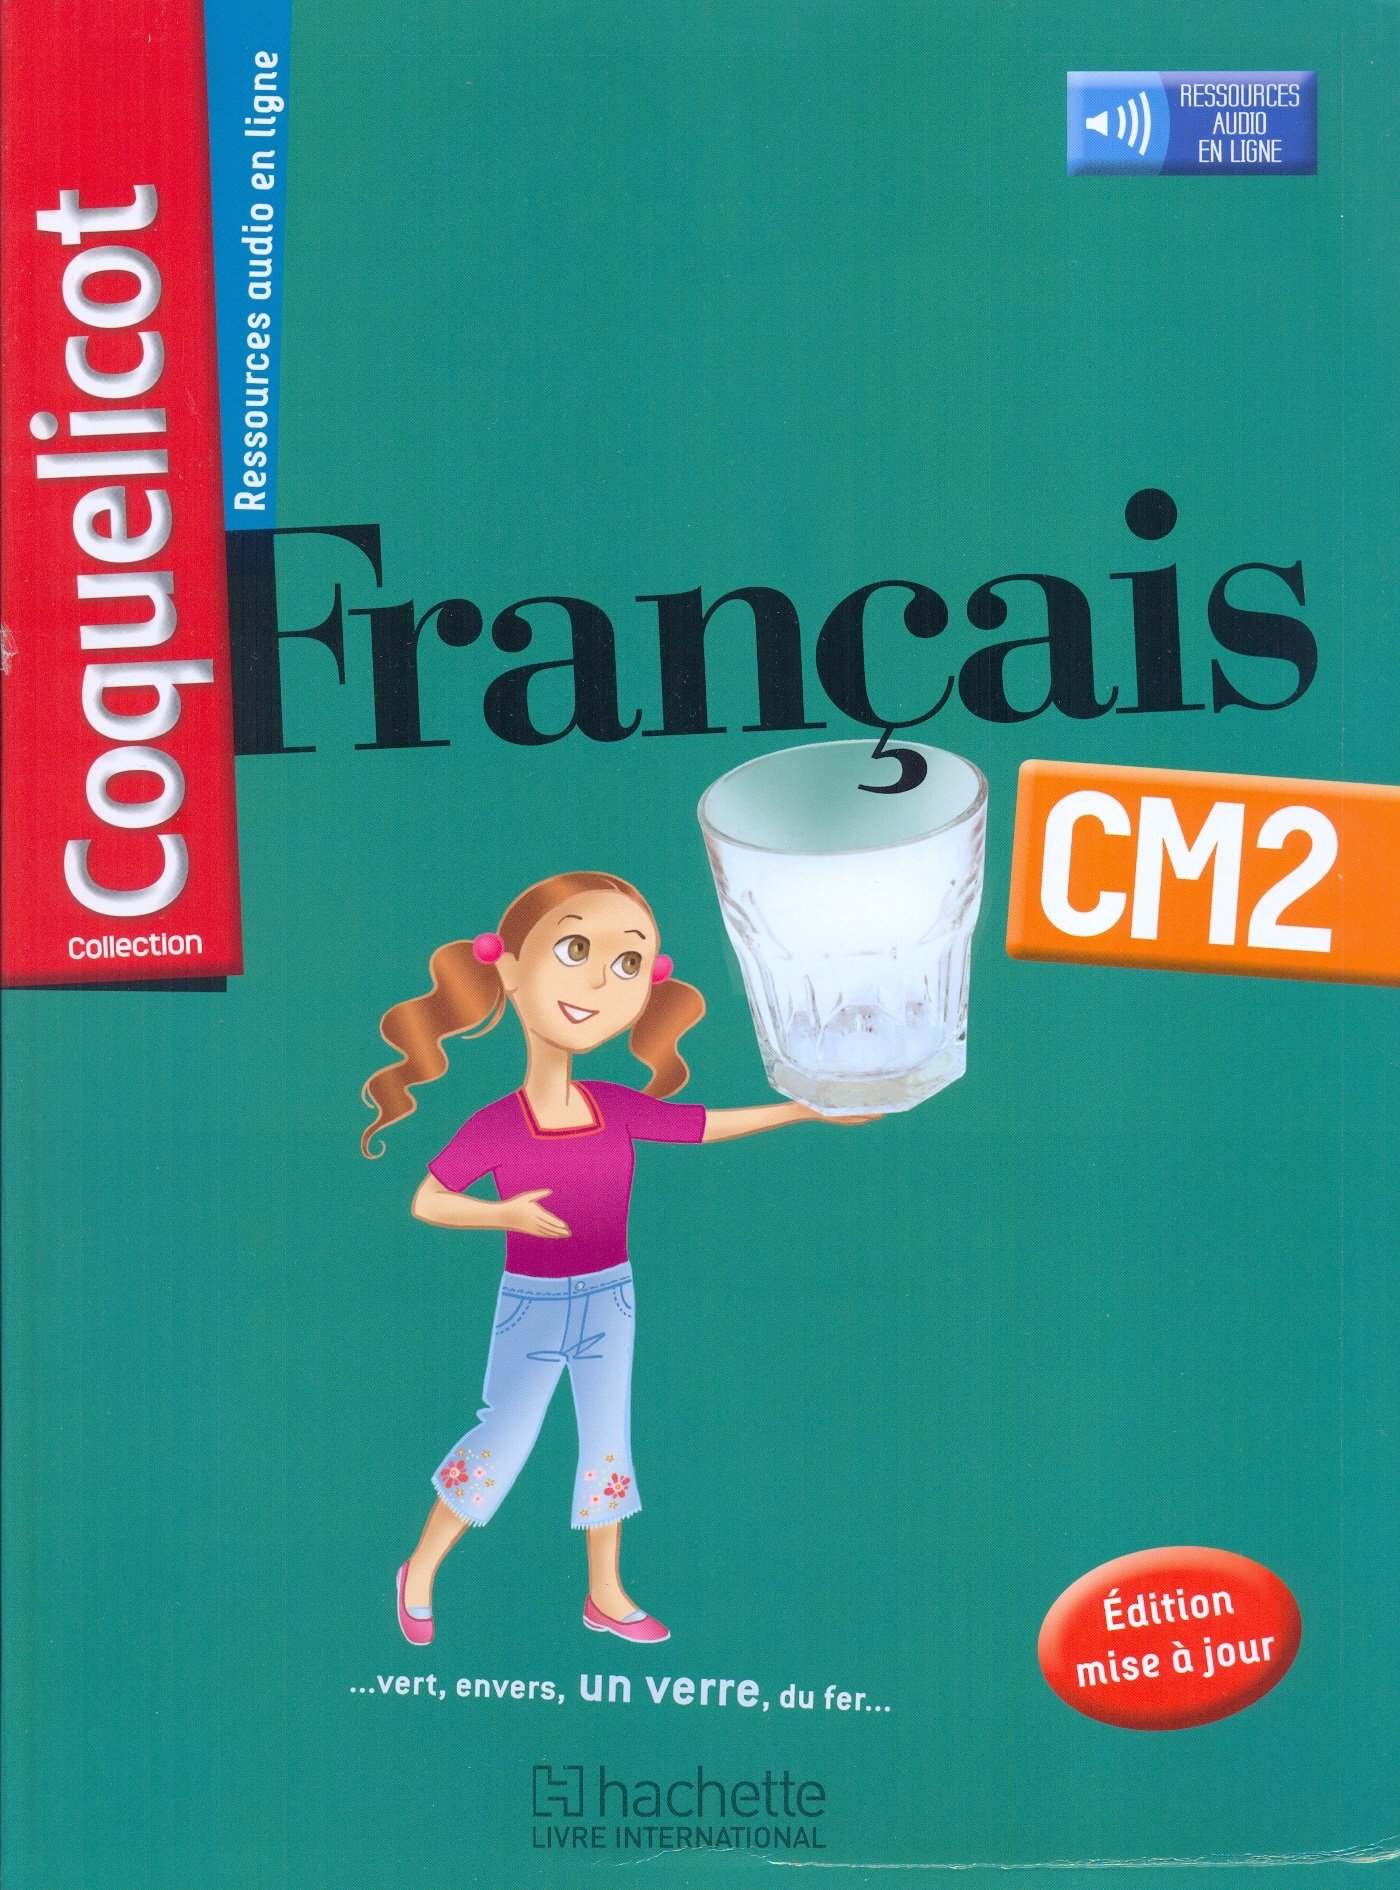 Francais Cm2 Coquelicot 9782753111196 Amazon Com Books